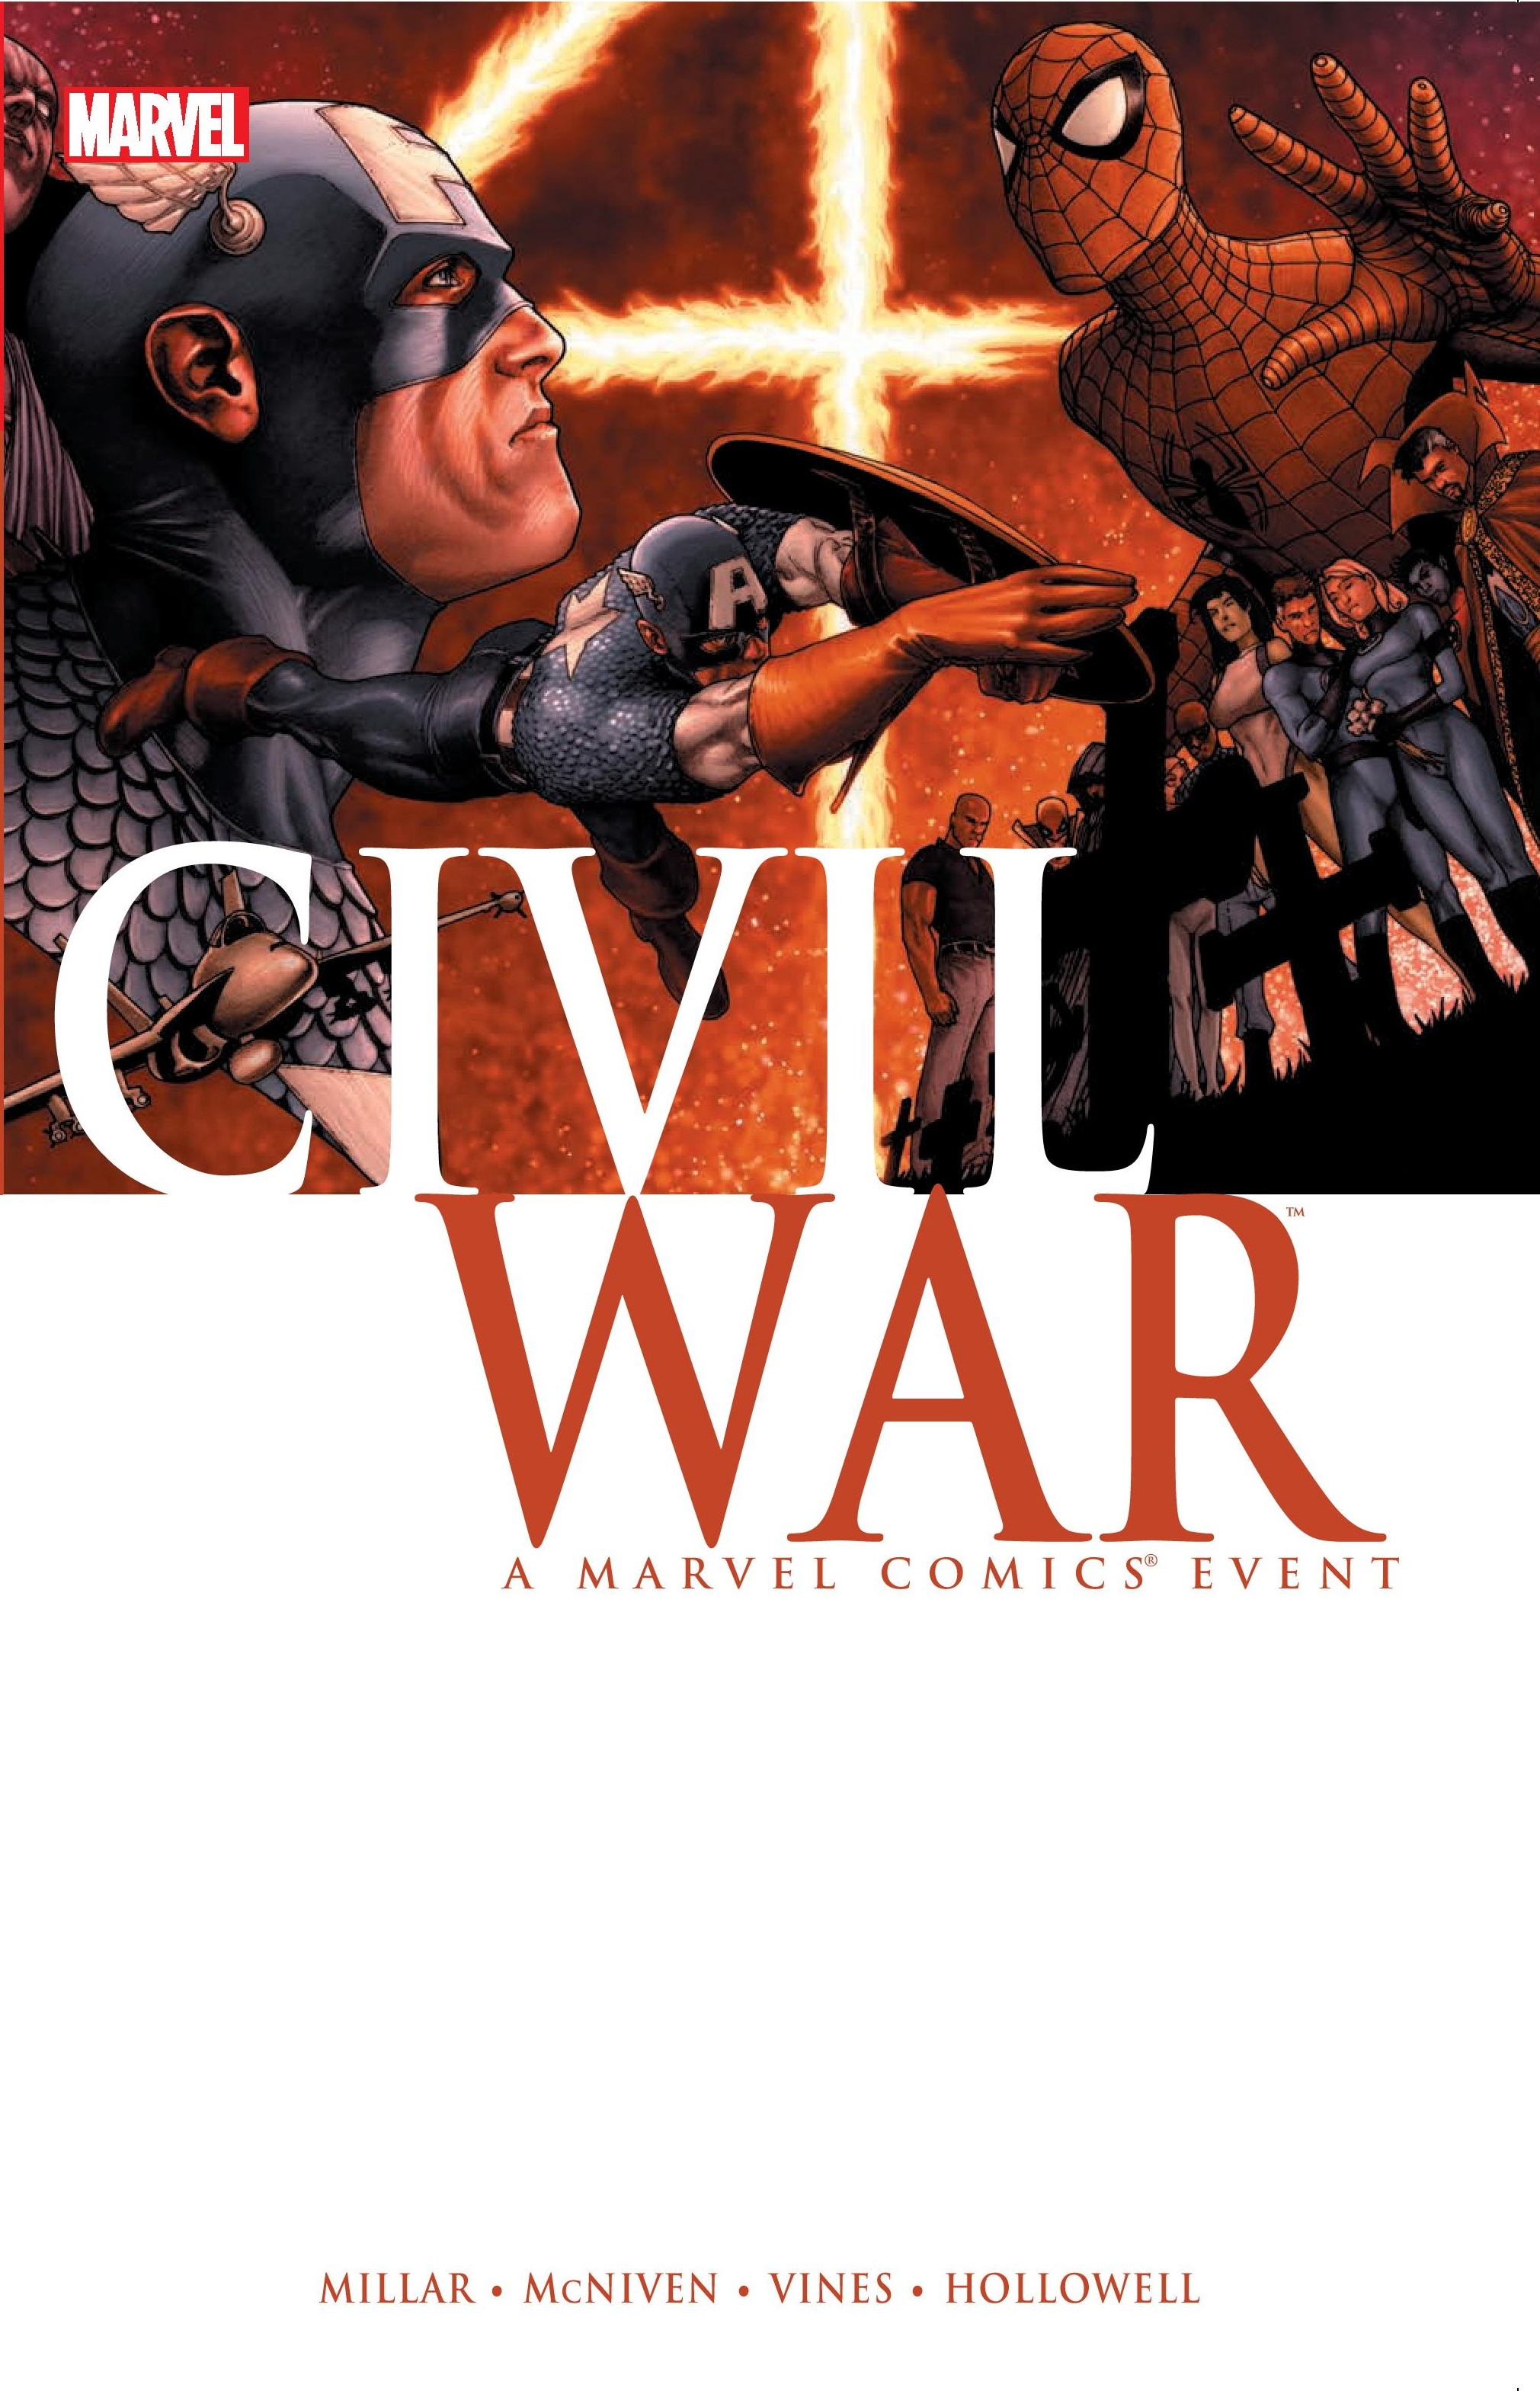 CIVIL WAR HC MCNIVEN COVER (Hardcover)